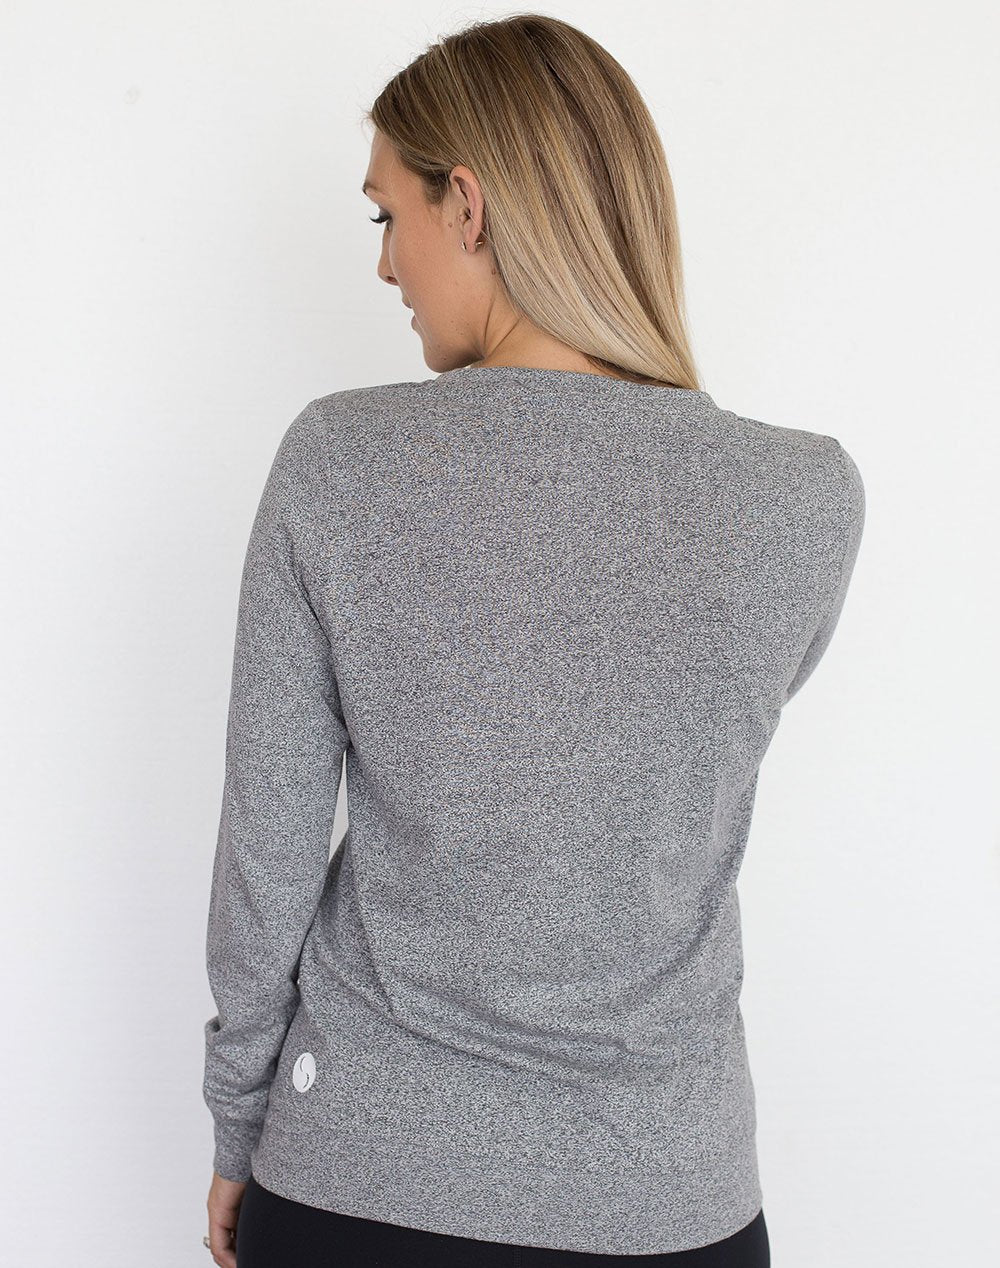 back view of a mom in a gray crew neck maternity top